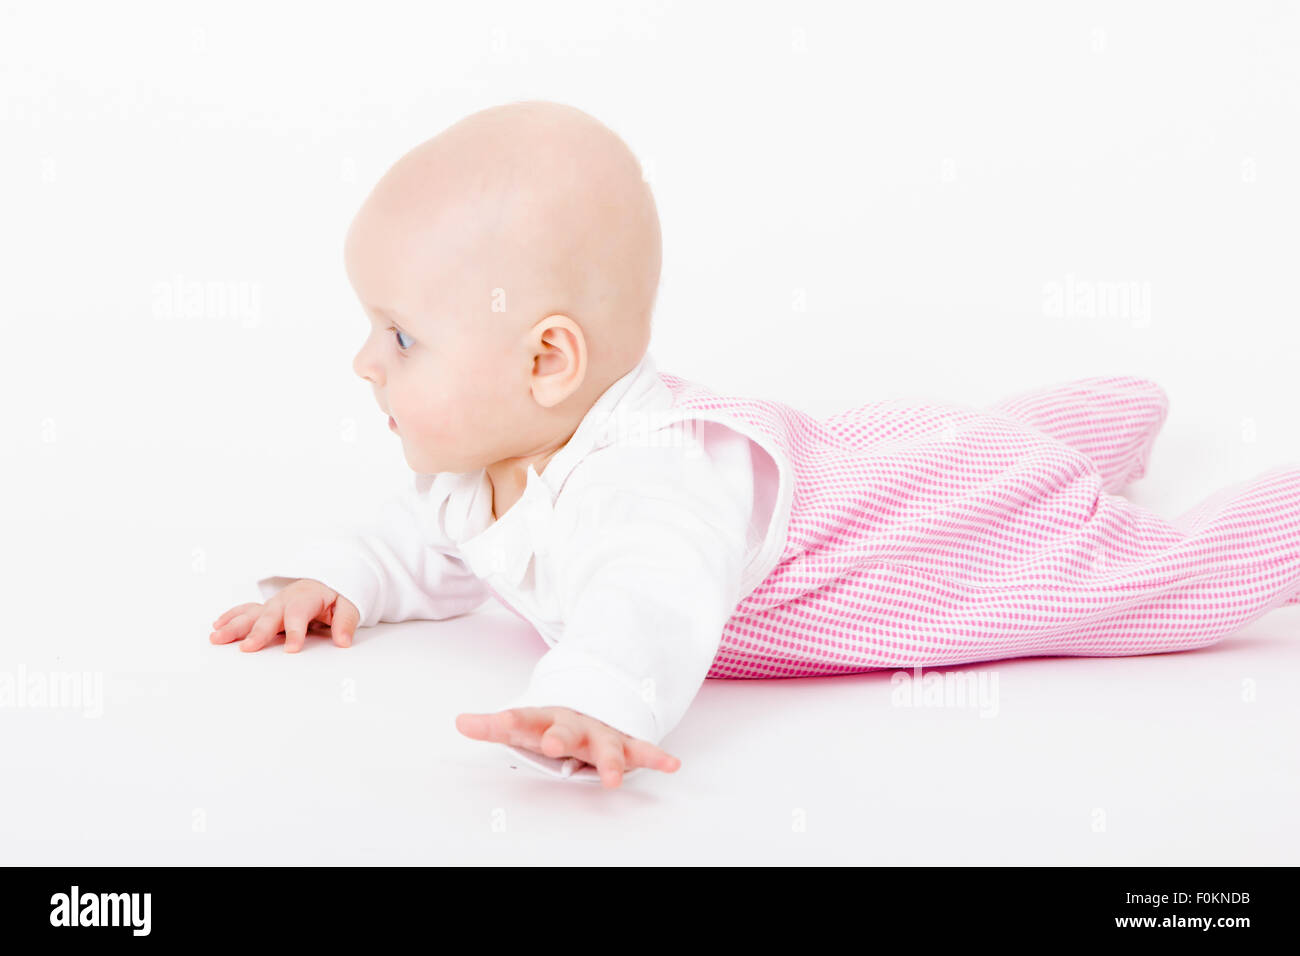 actively crawling wearing a romper baby. studio photo - Stock Image